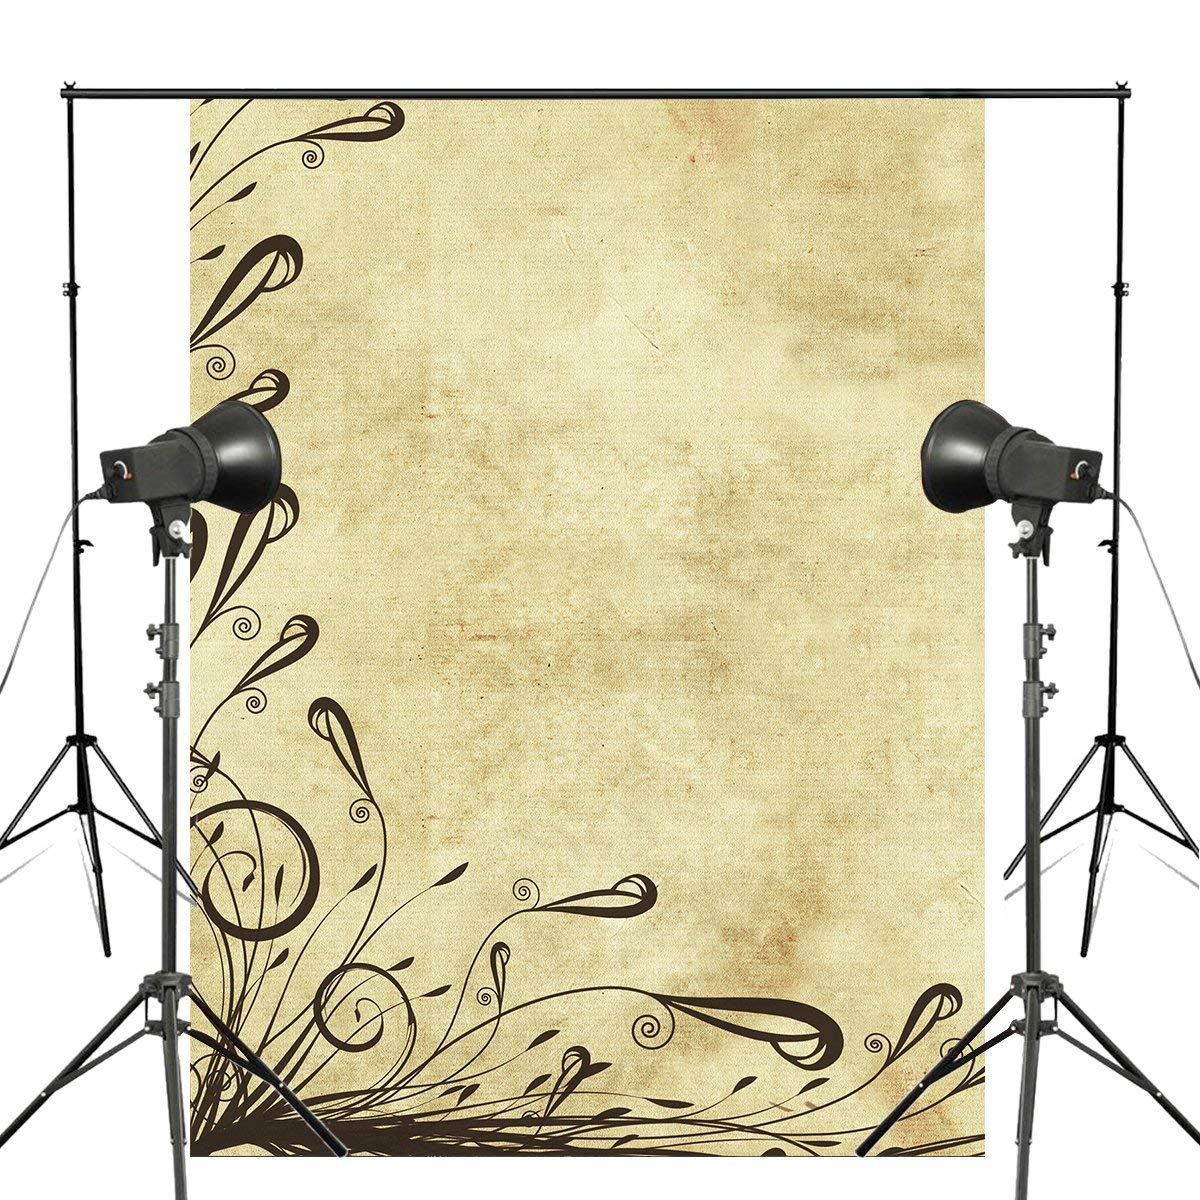 5x7ft Vintage Old Parchment Yellow Photography Backdrop Grass Background Kids Photo Studio Wall